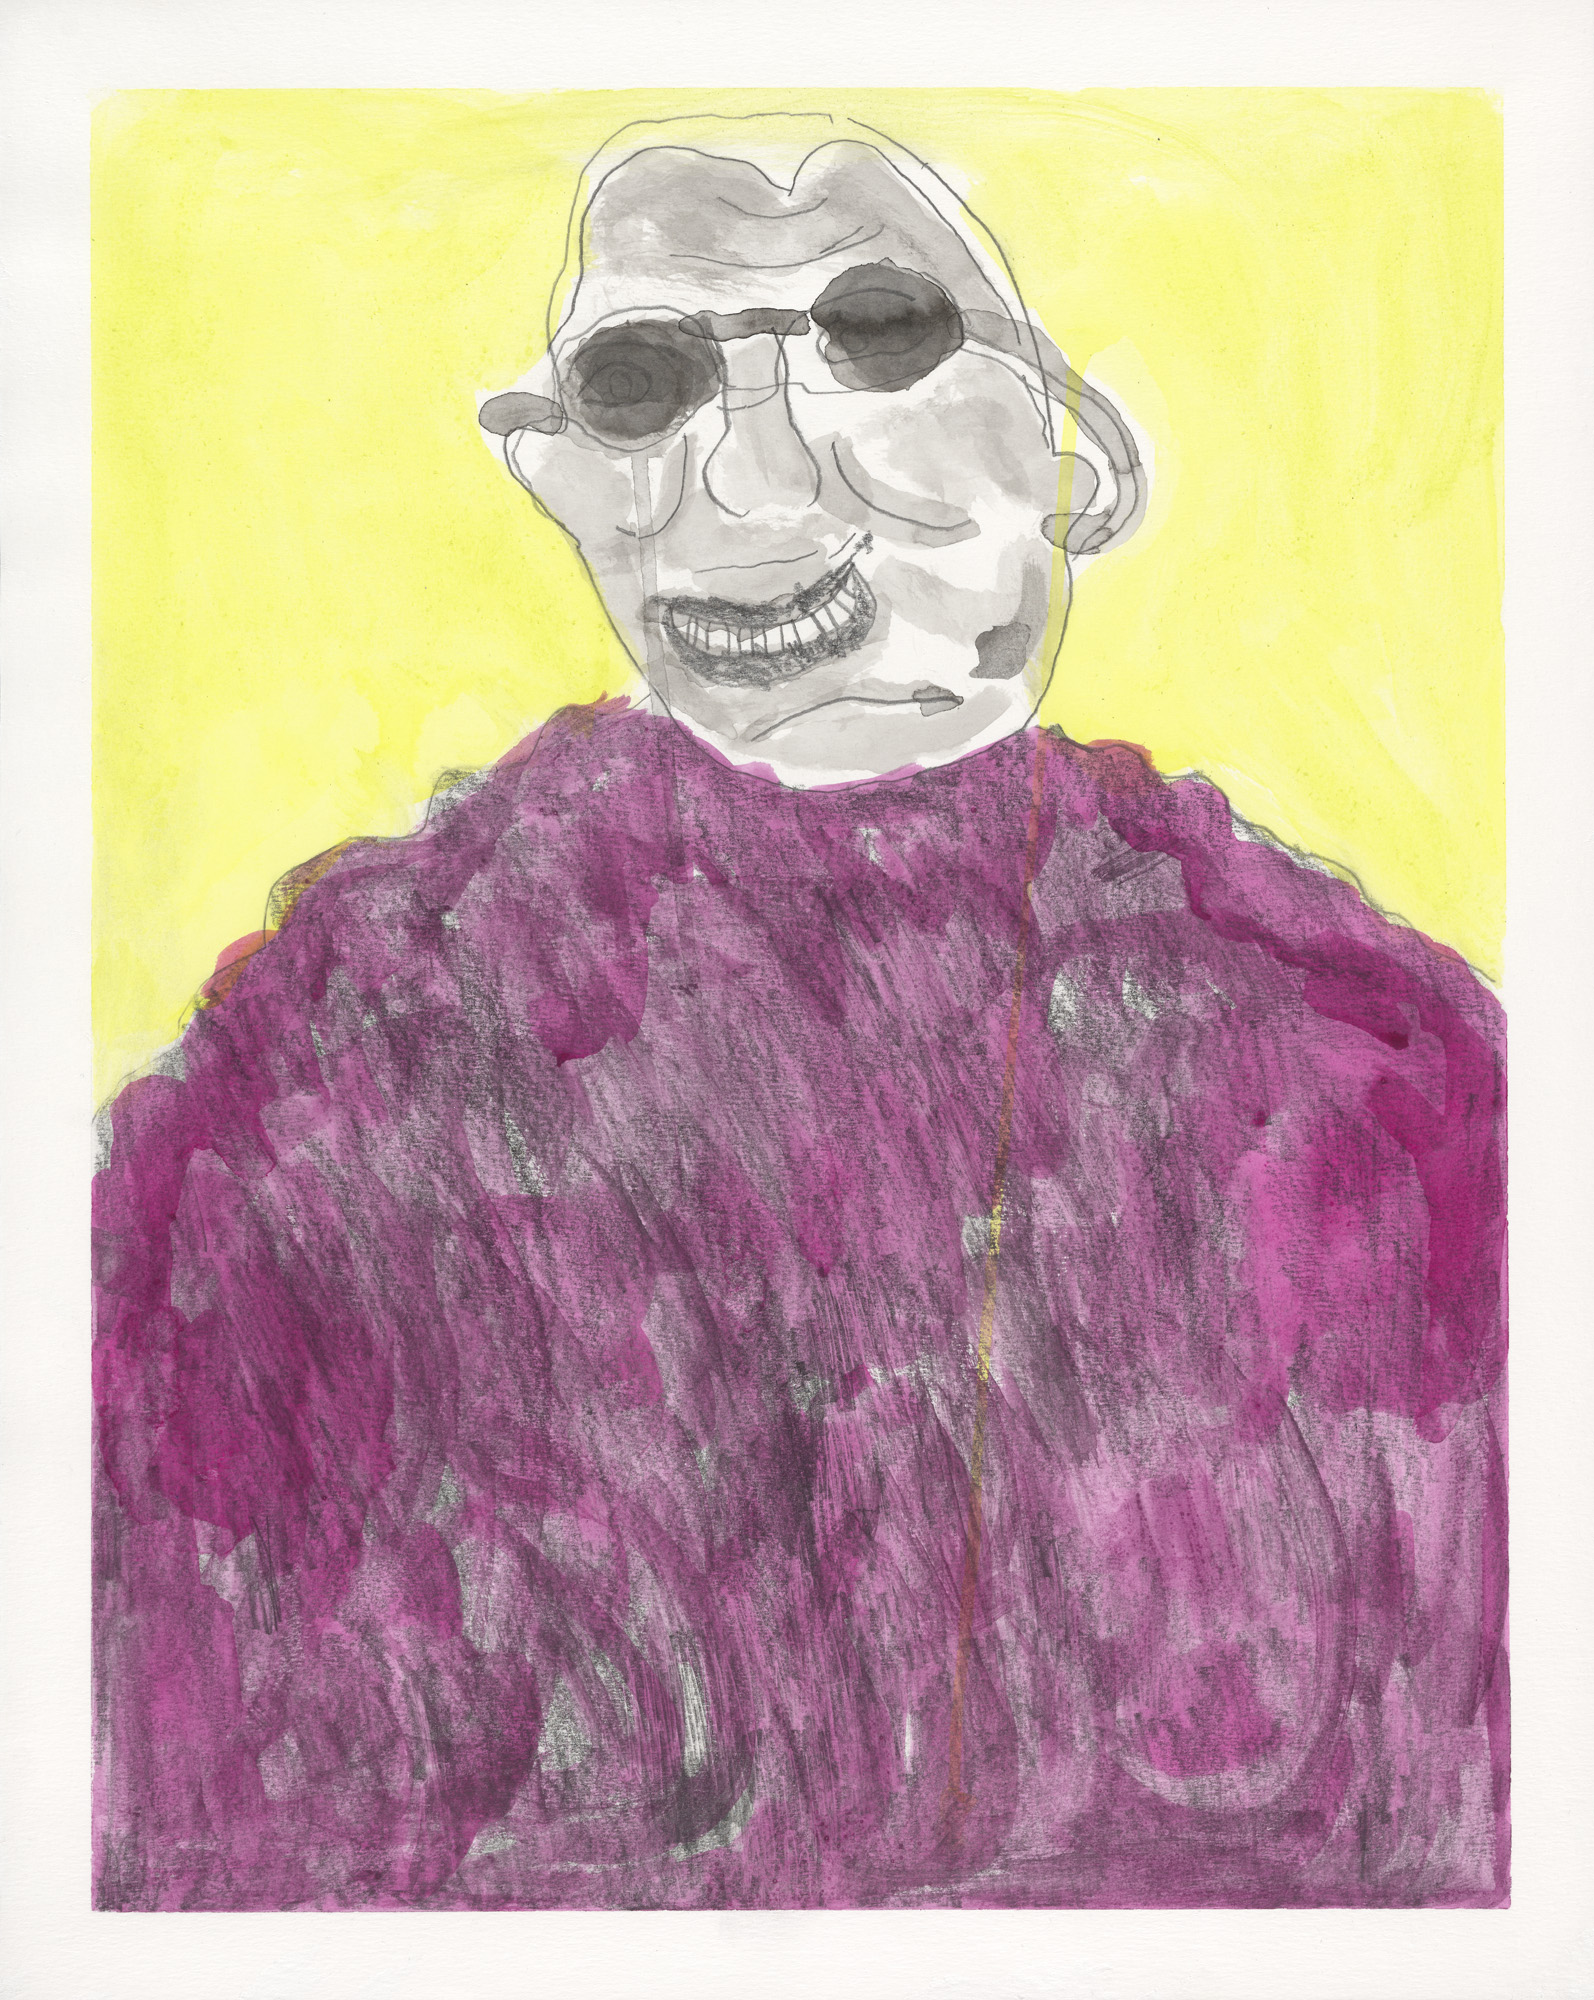 A confident drawing of the head and shoulders of an African American man wearing dark glasses. A vibrant lemon background contrasts with his face and the flood of deep purple of his sweater.